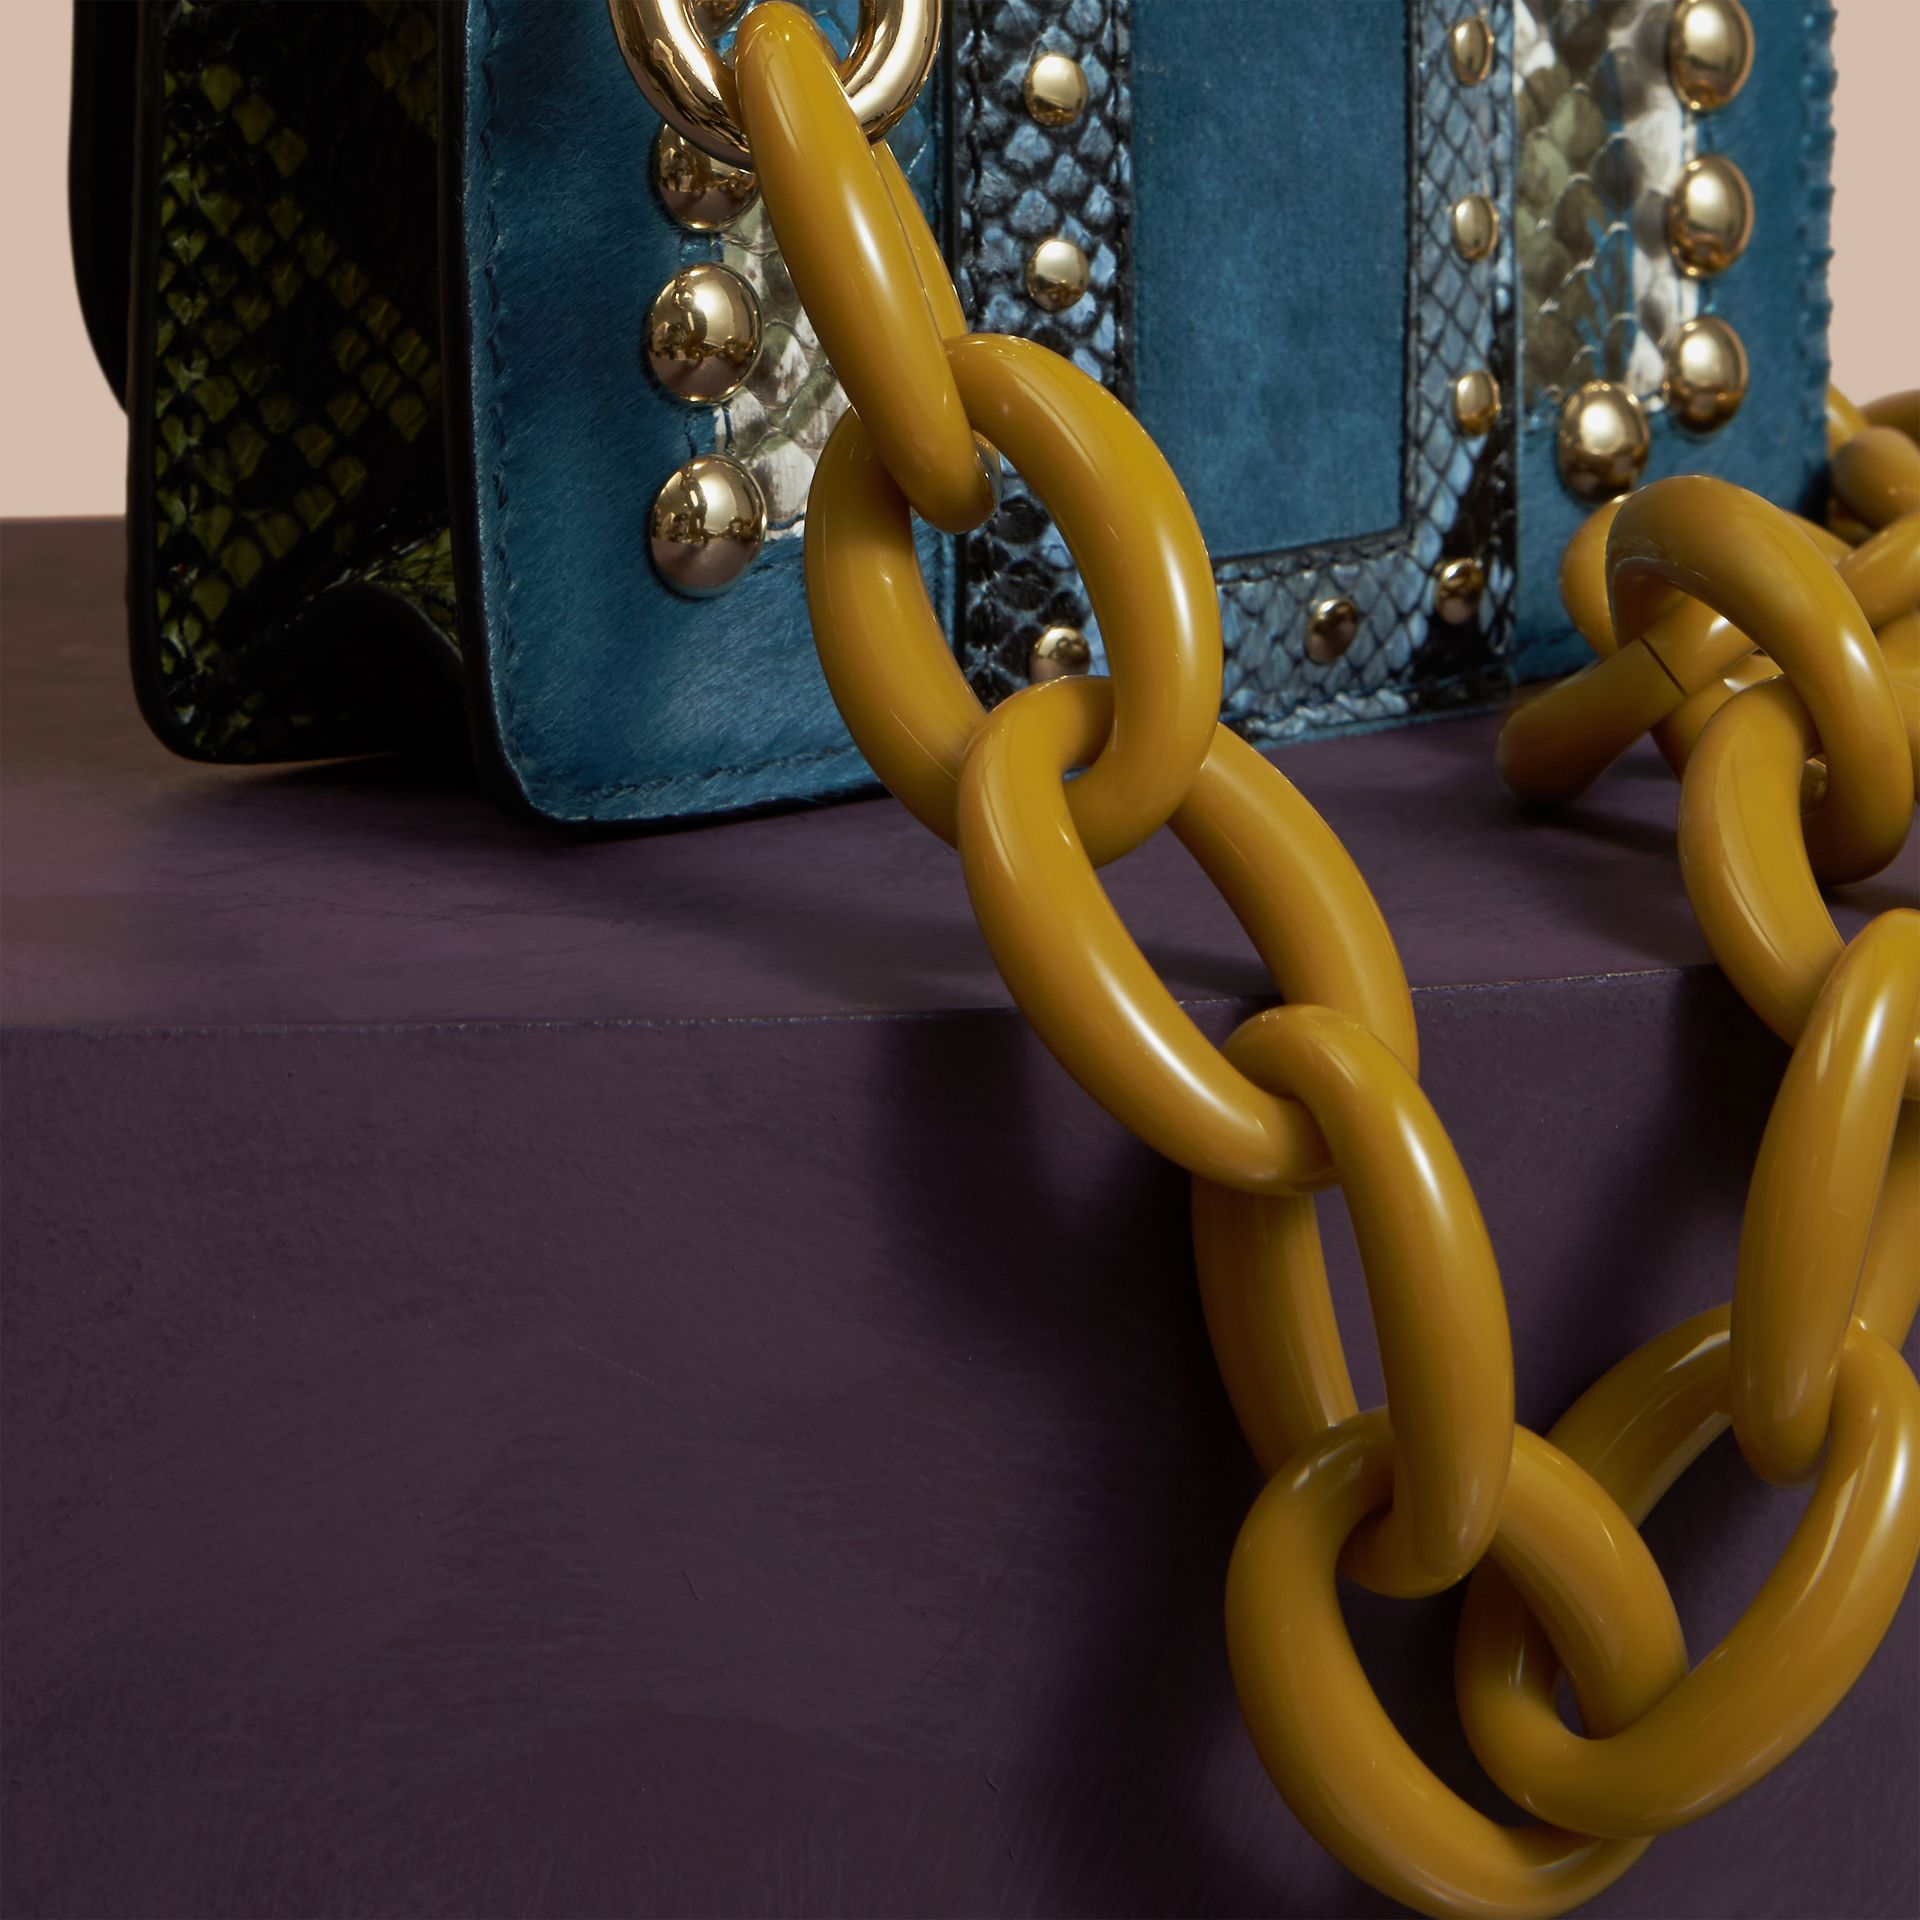 Pale opal The Mini Square Buckle Bag in Calfskin, Snakeskin and Velvet Pale Opal - gallery image 5